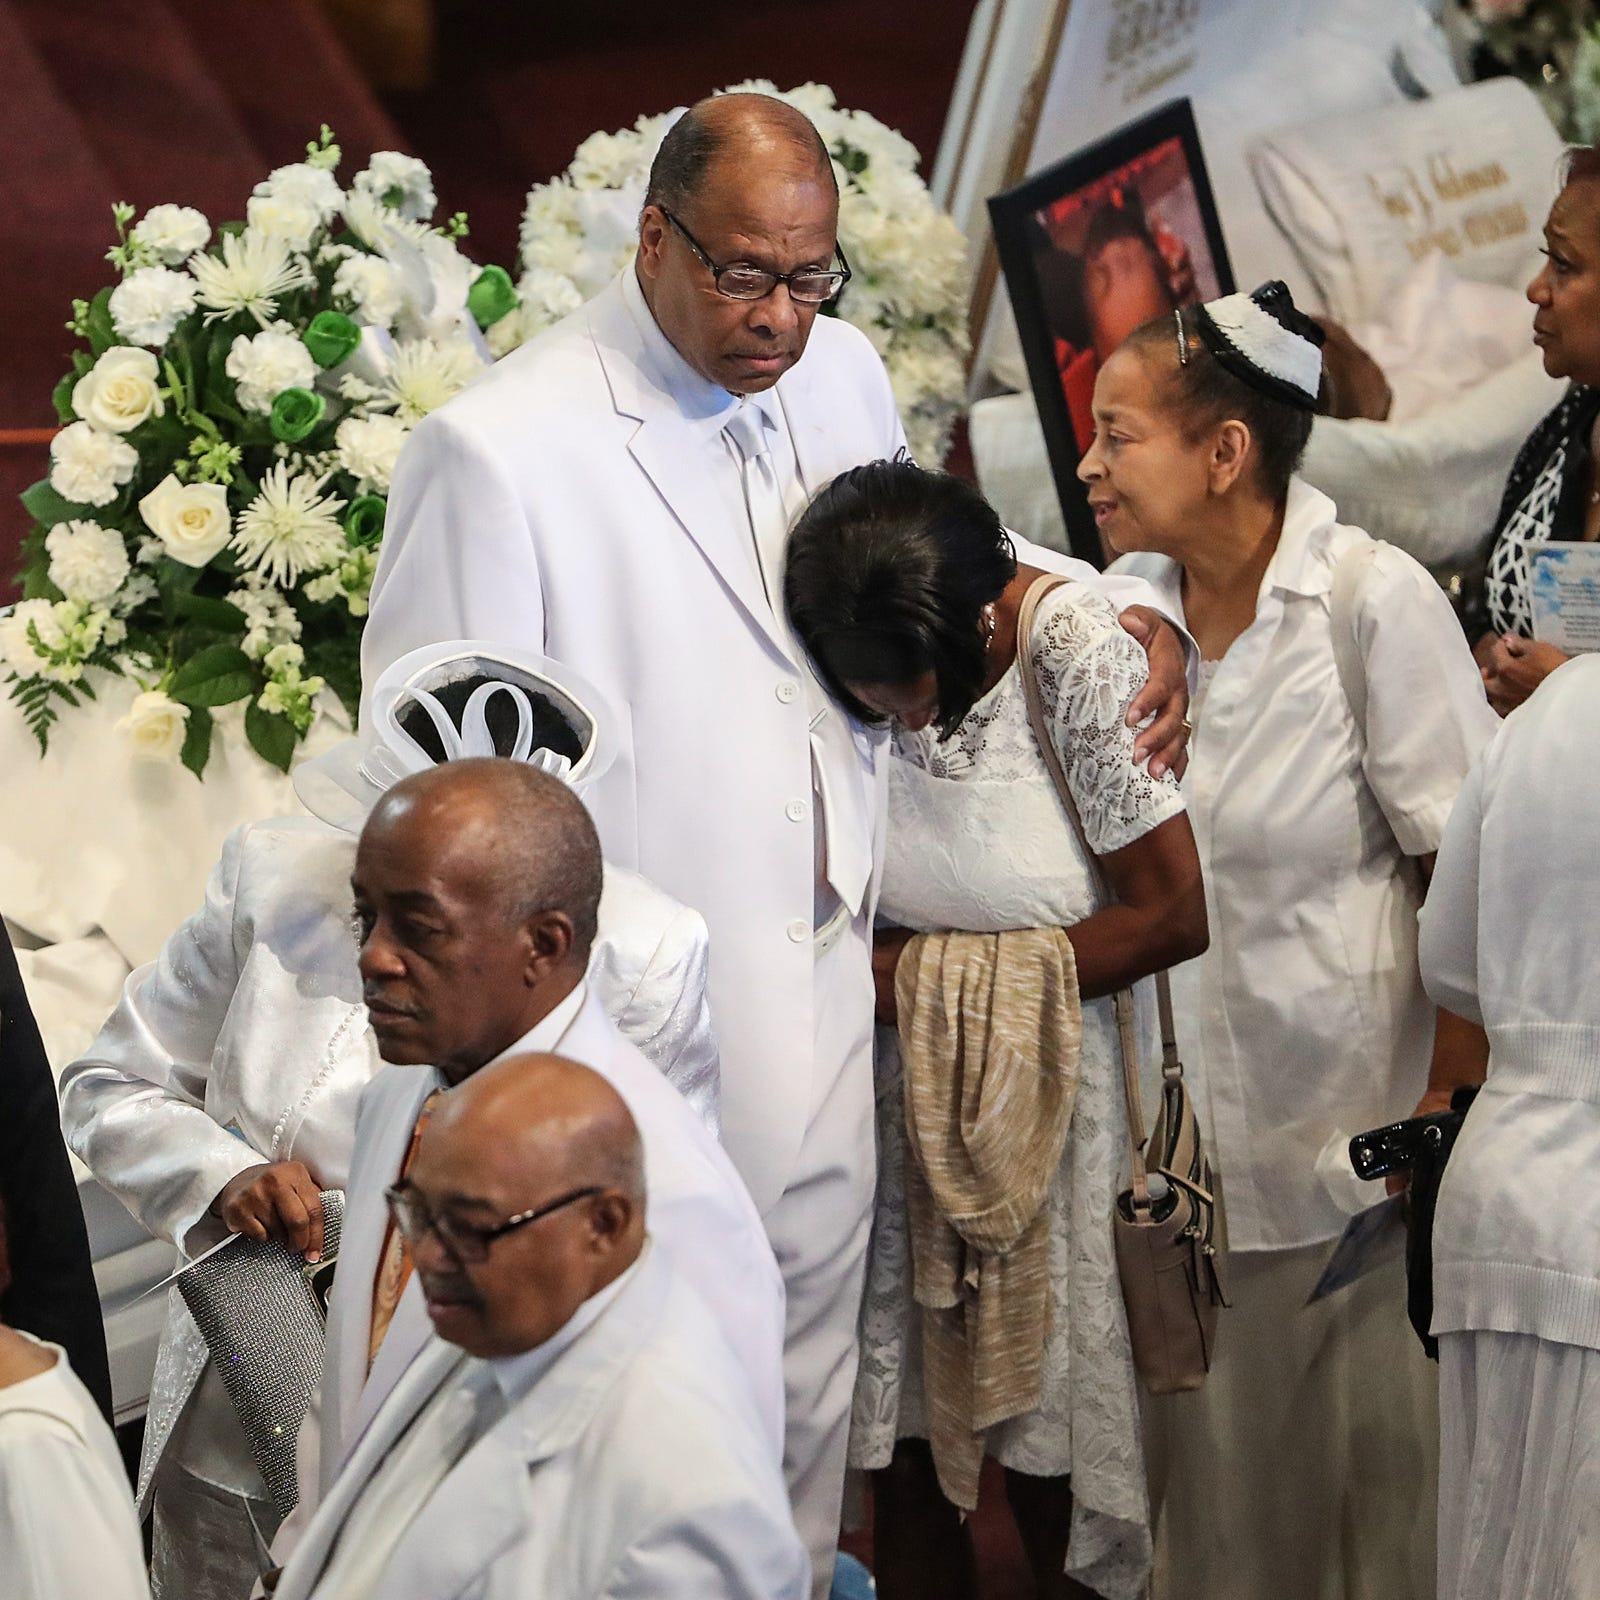 Coleman family funeral: 'Love is being demonstrated here today'